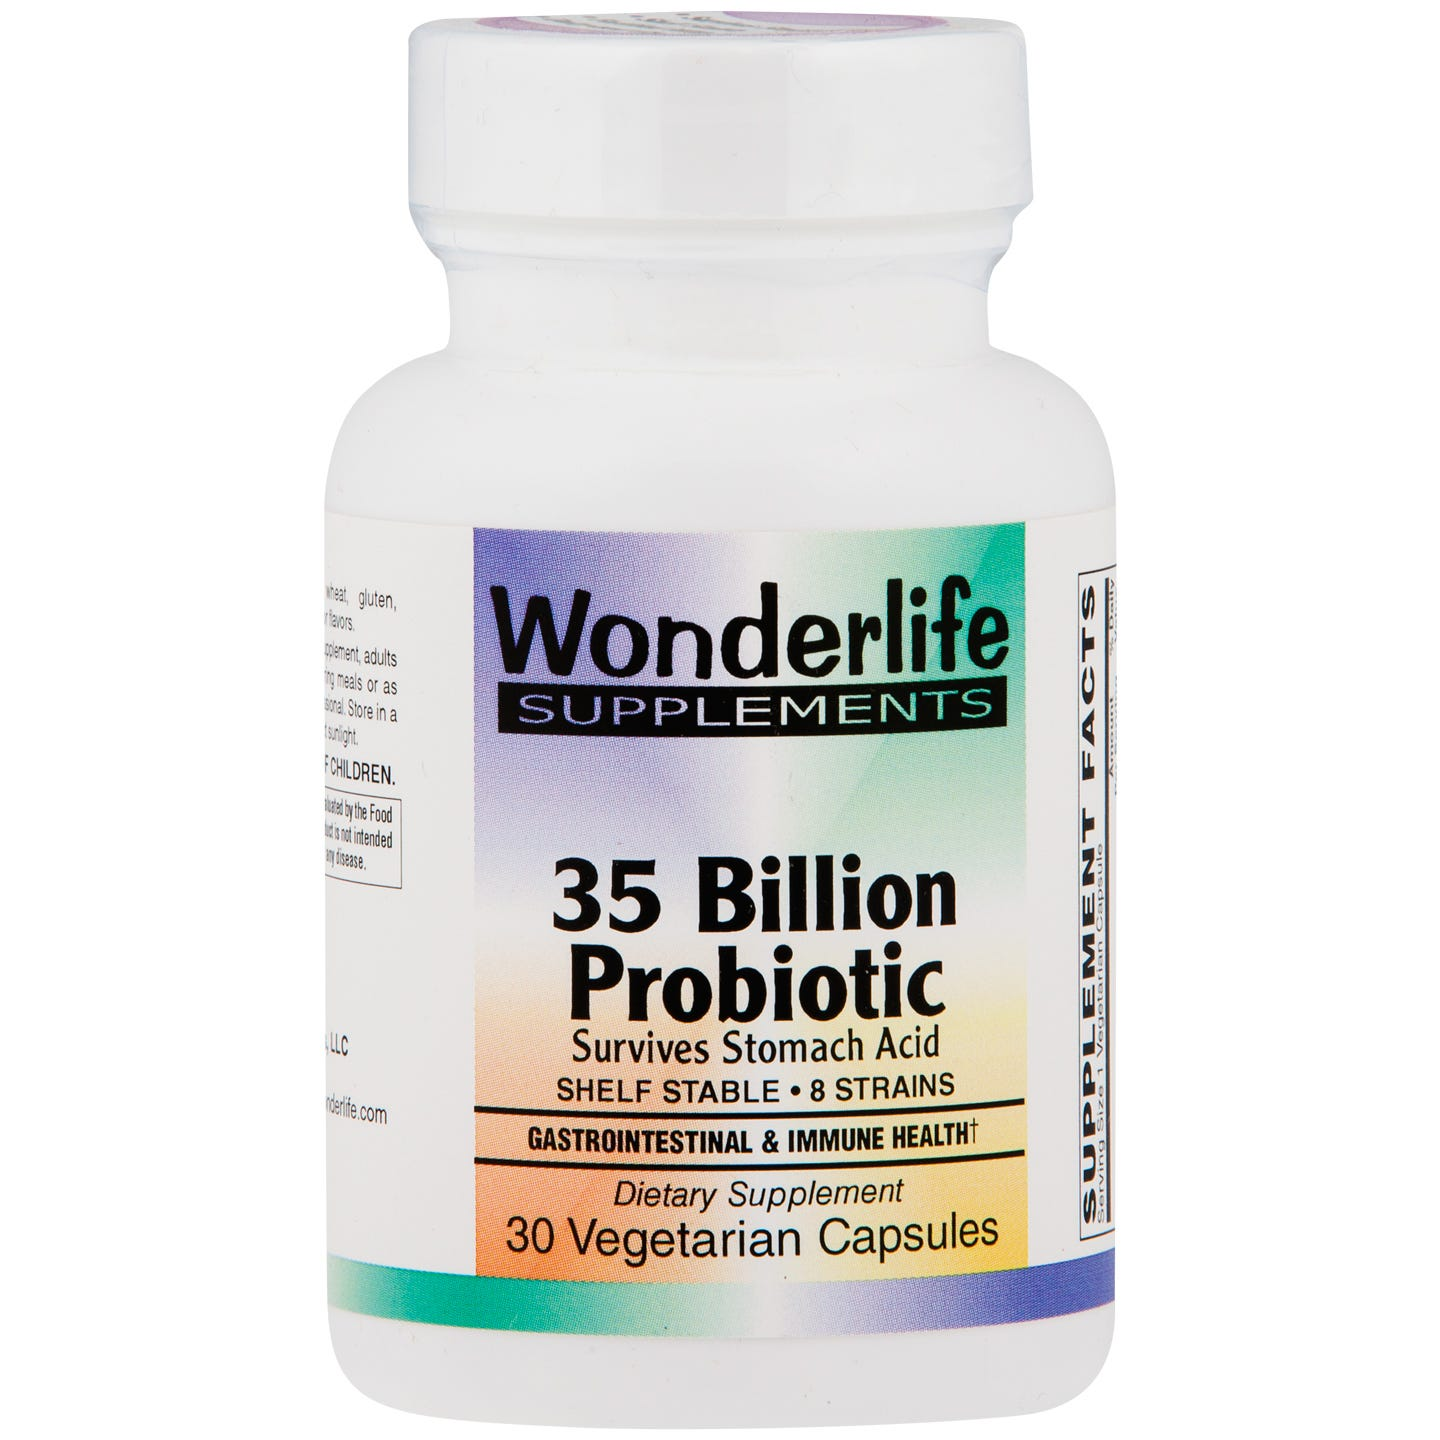 #health,Wonderlife 35 Billion Probiotic - 30 VCaps Each of the strains in this proprietary blend of 8 probiotic strains has been developed through decades of intensive scientific research. Each has been exposed to a variety of harsh conditions. As generations passed, the survivors of these conditions developed resistance to acidity, alkalinity, moisture, pressure and antibiotics. What does that mean to you? You are guaranteed an effective multi-level probiotic that survives long enough in you